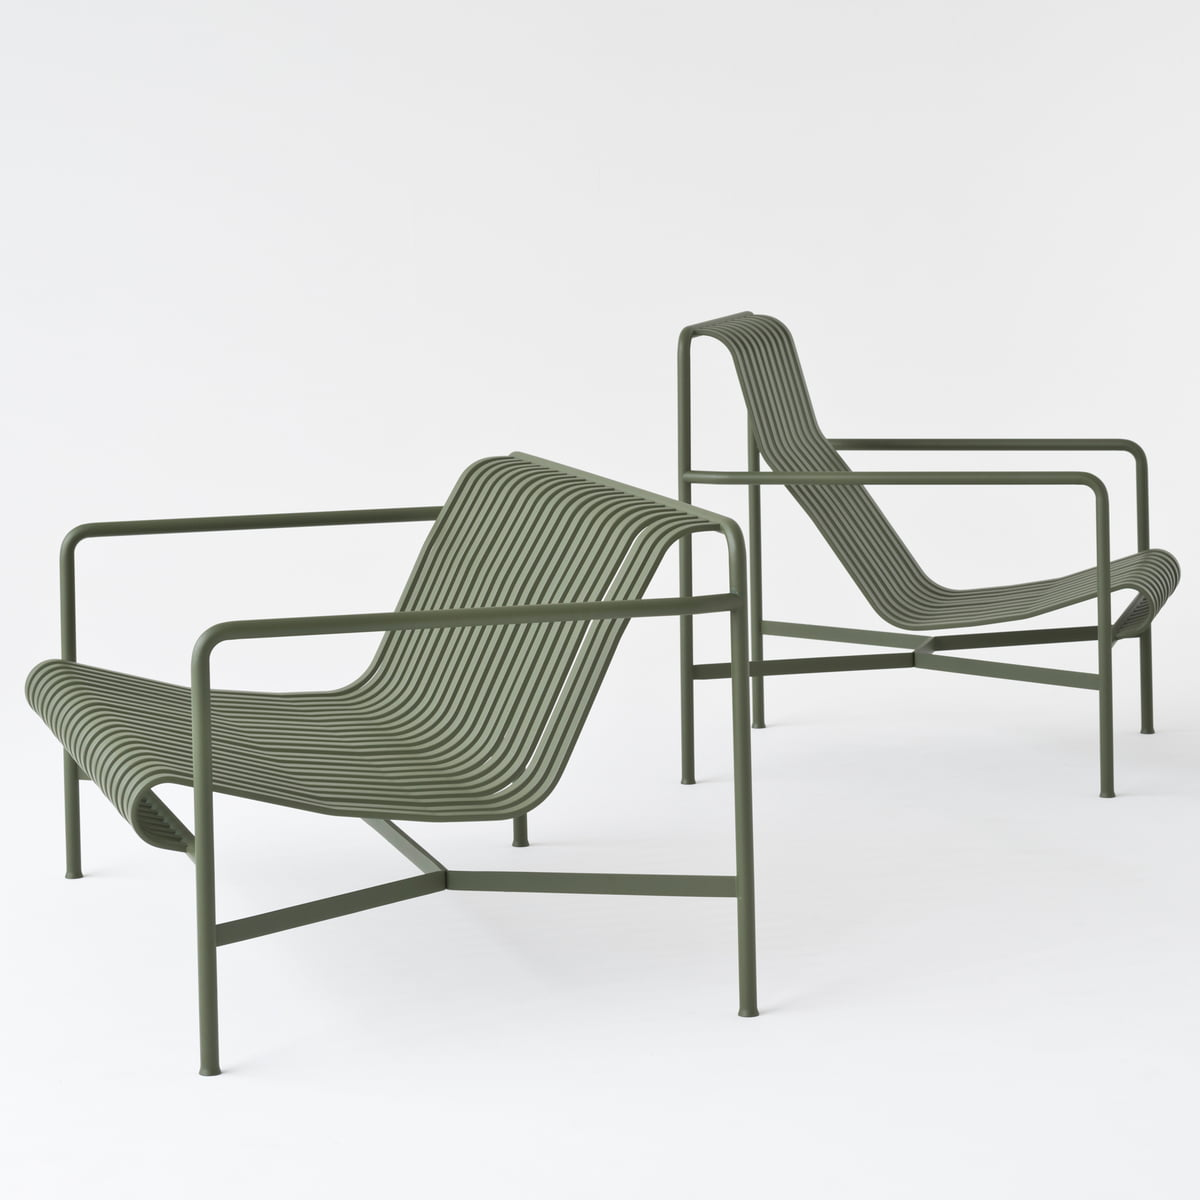 Fersk Palissade lounge chair high by Hay at the shop VX-95